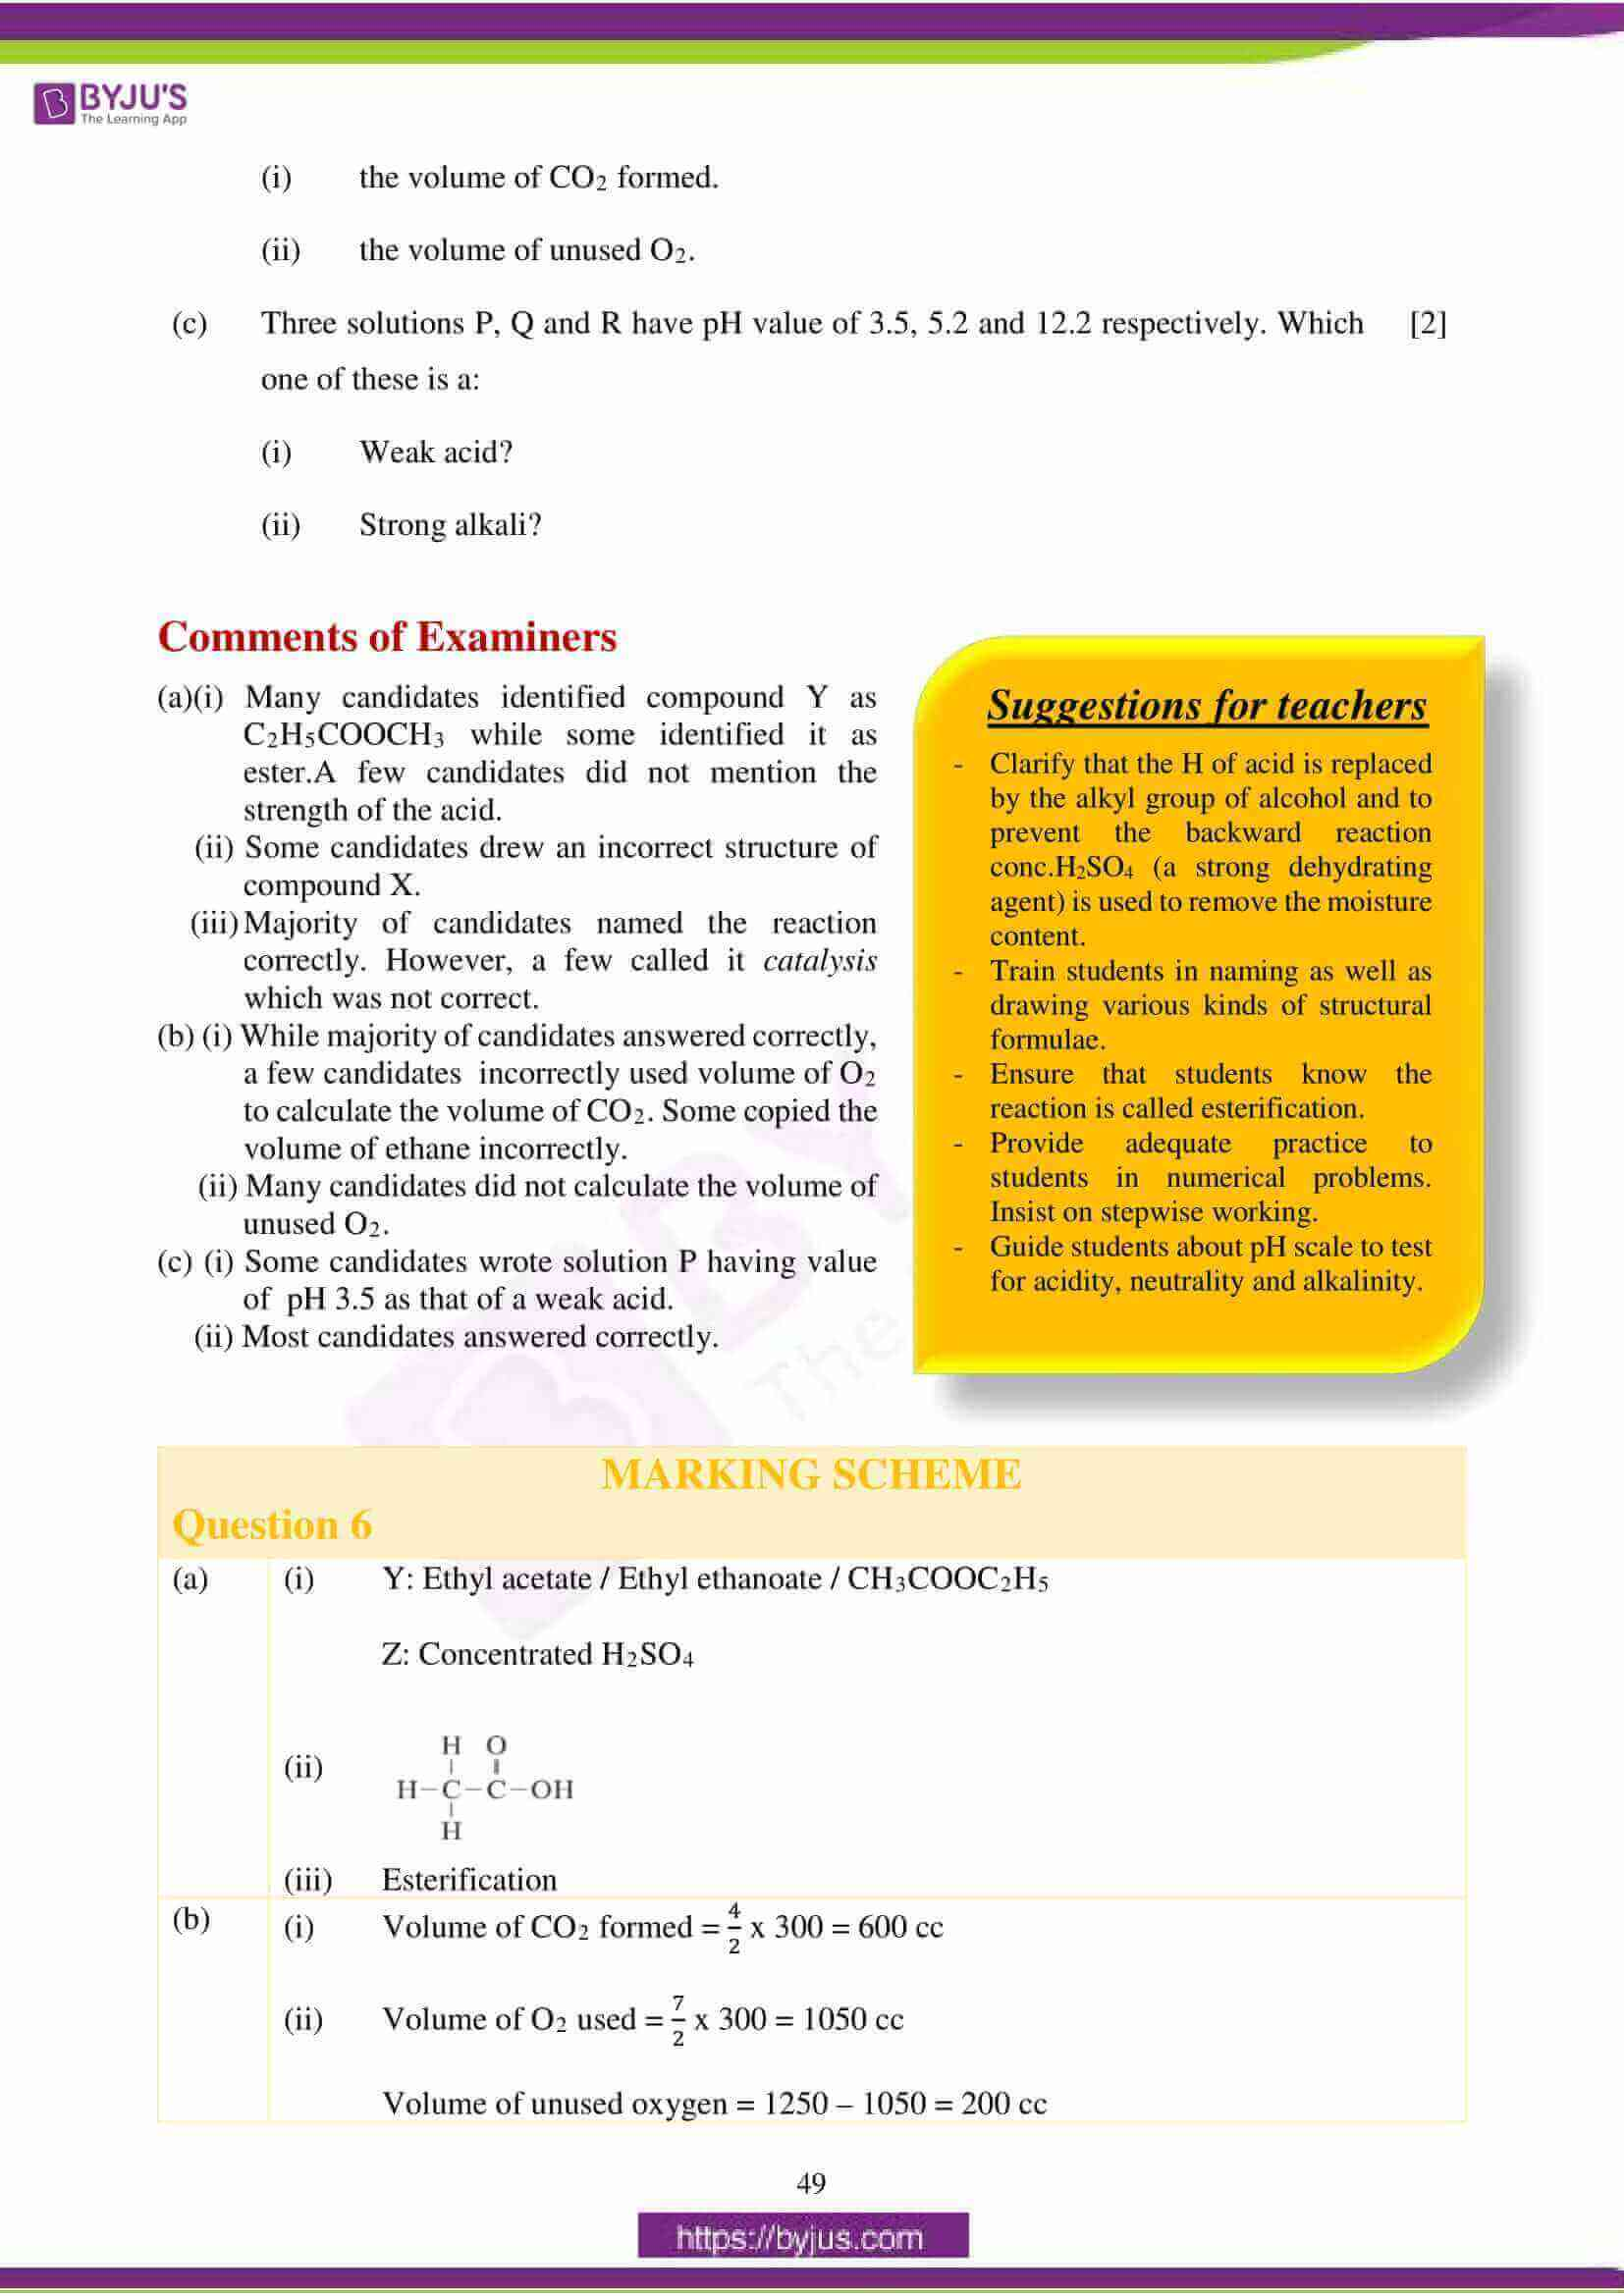 icse class 10 chemistry question paper solution 2018 16